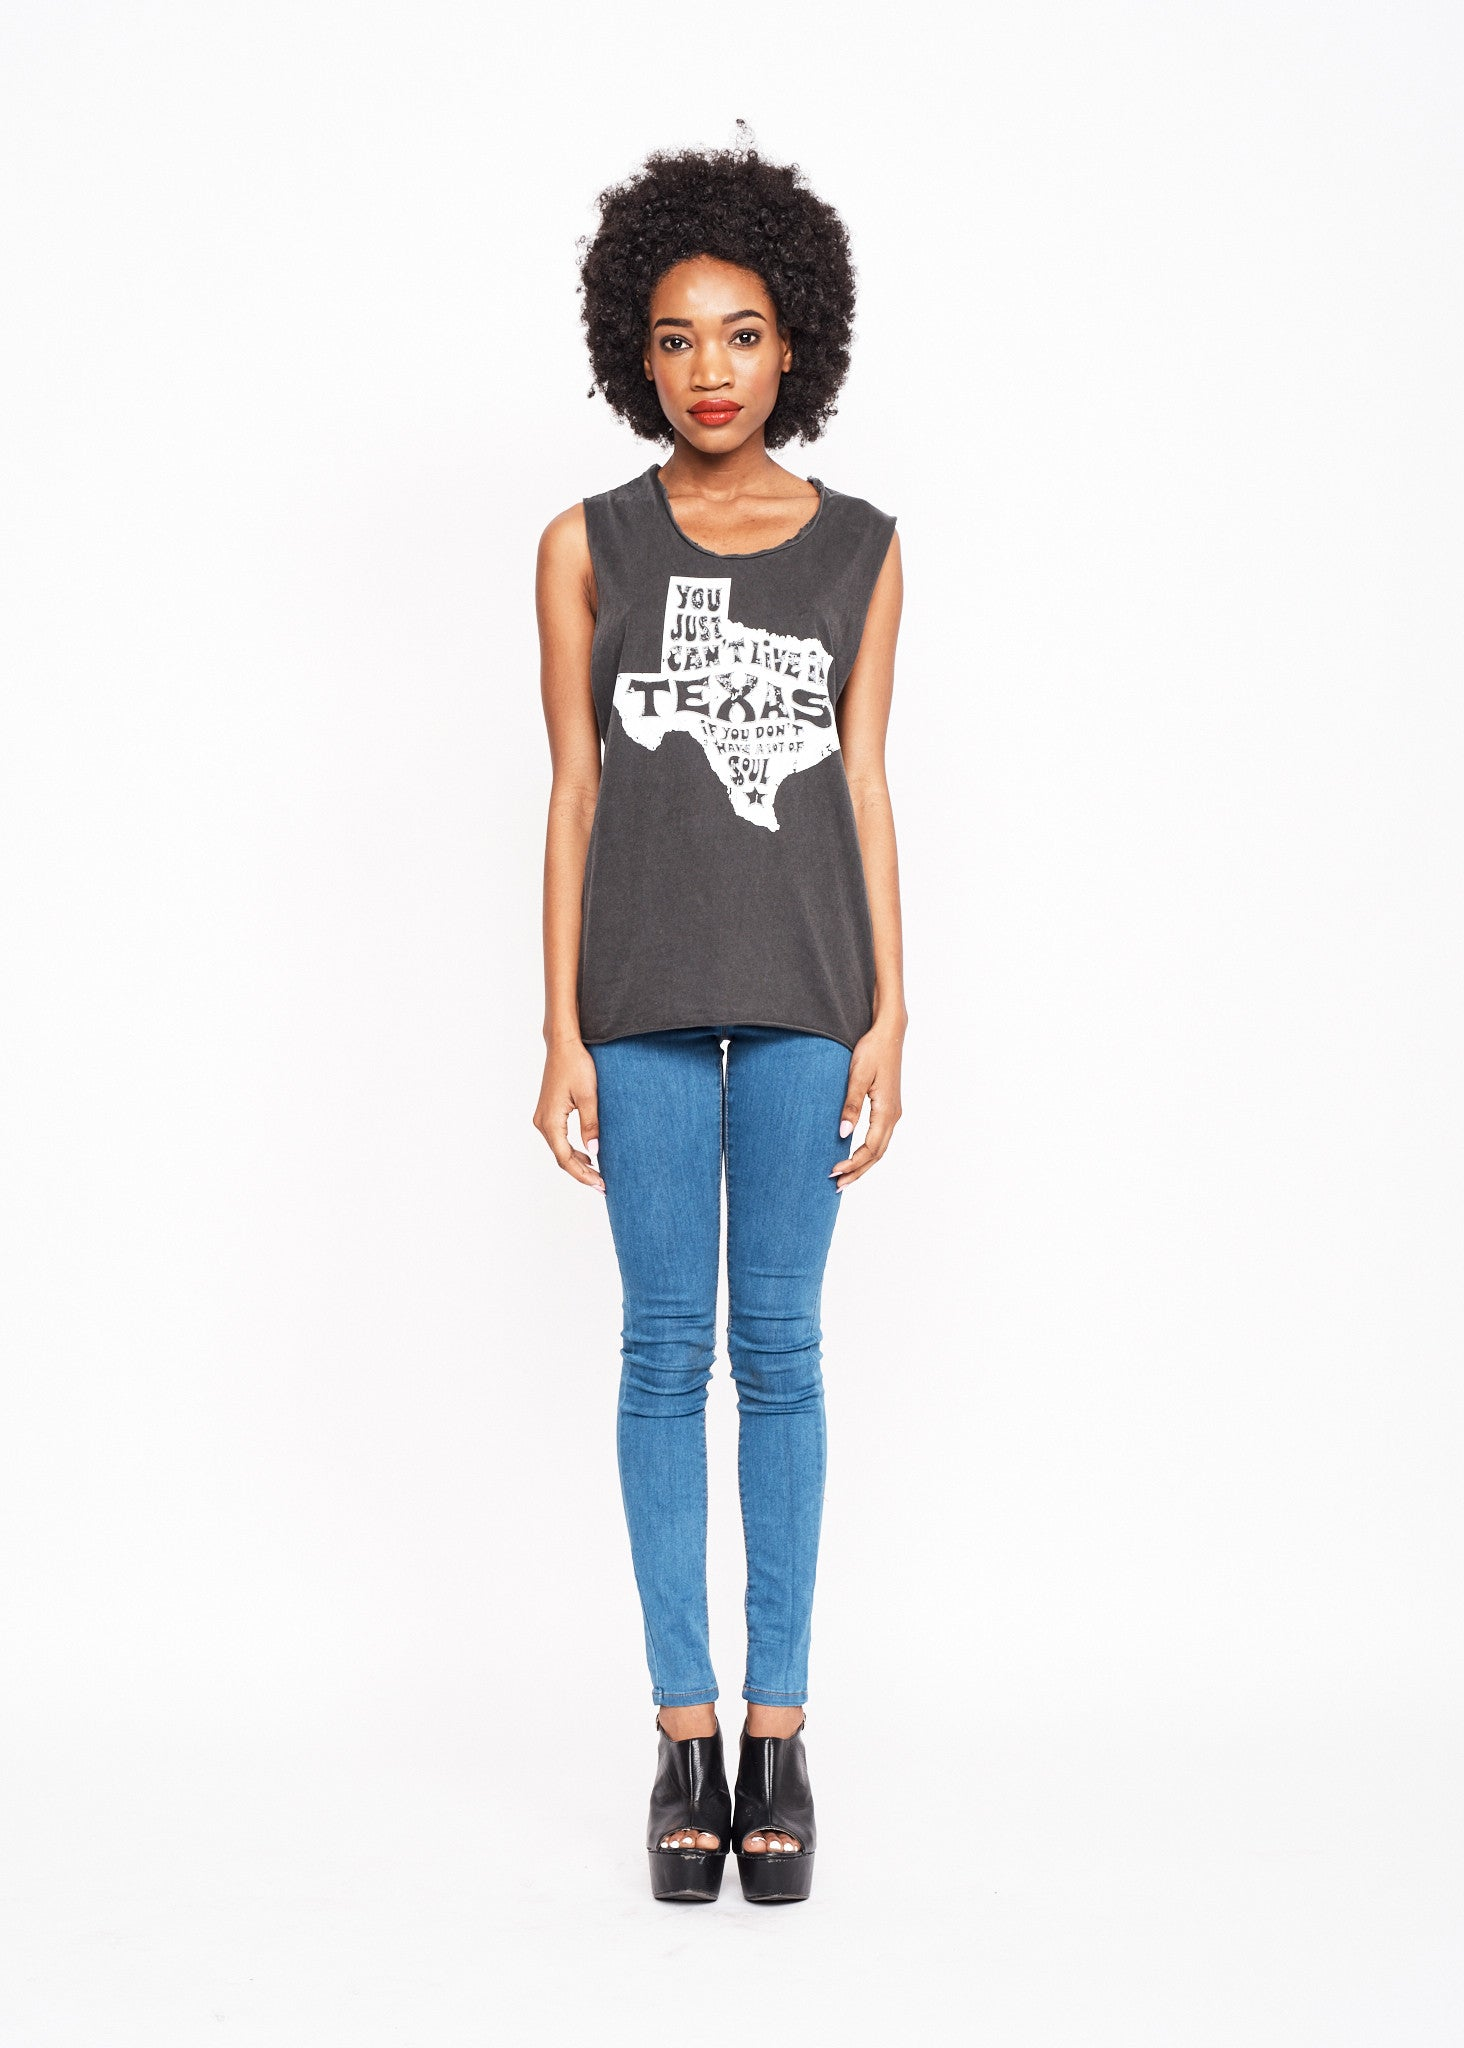 Texas Soul Women's Muscle Tee - Vintage Black - Women's Muscle Tee - Midnight Rider